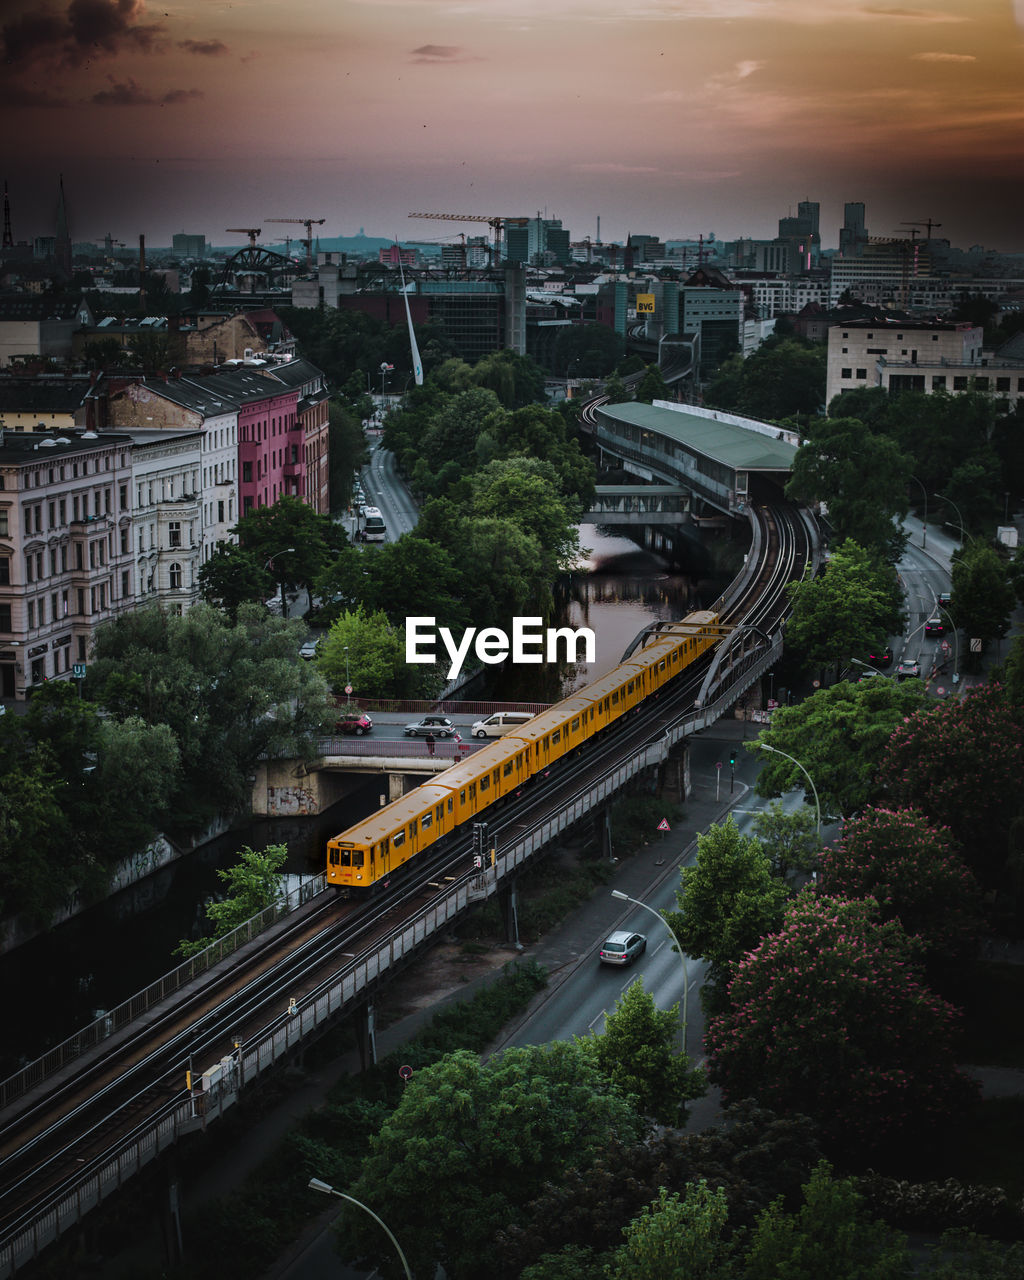 High angle view of train on railway bridge in city during sunset